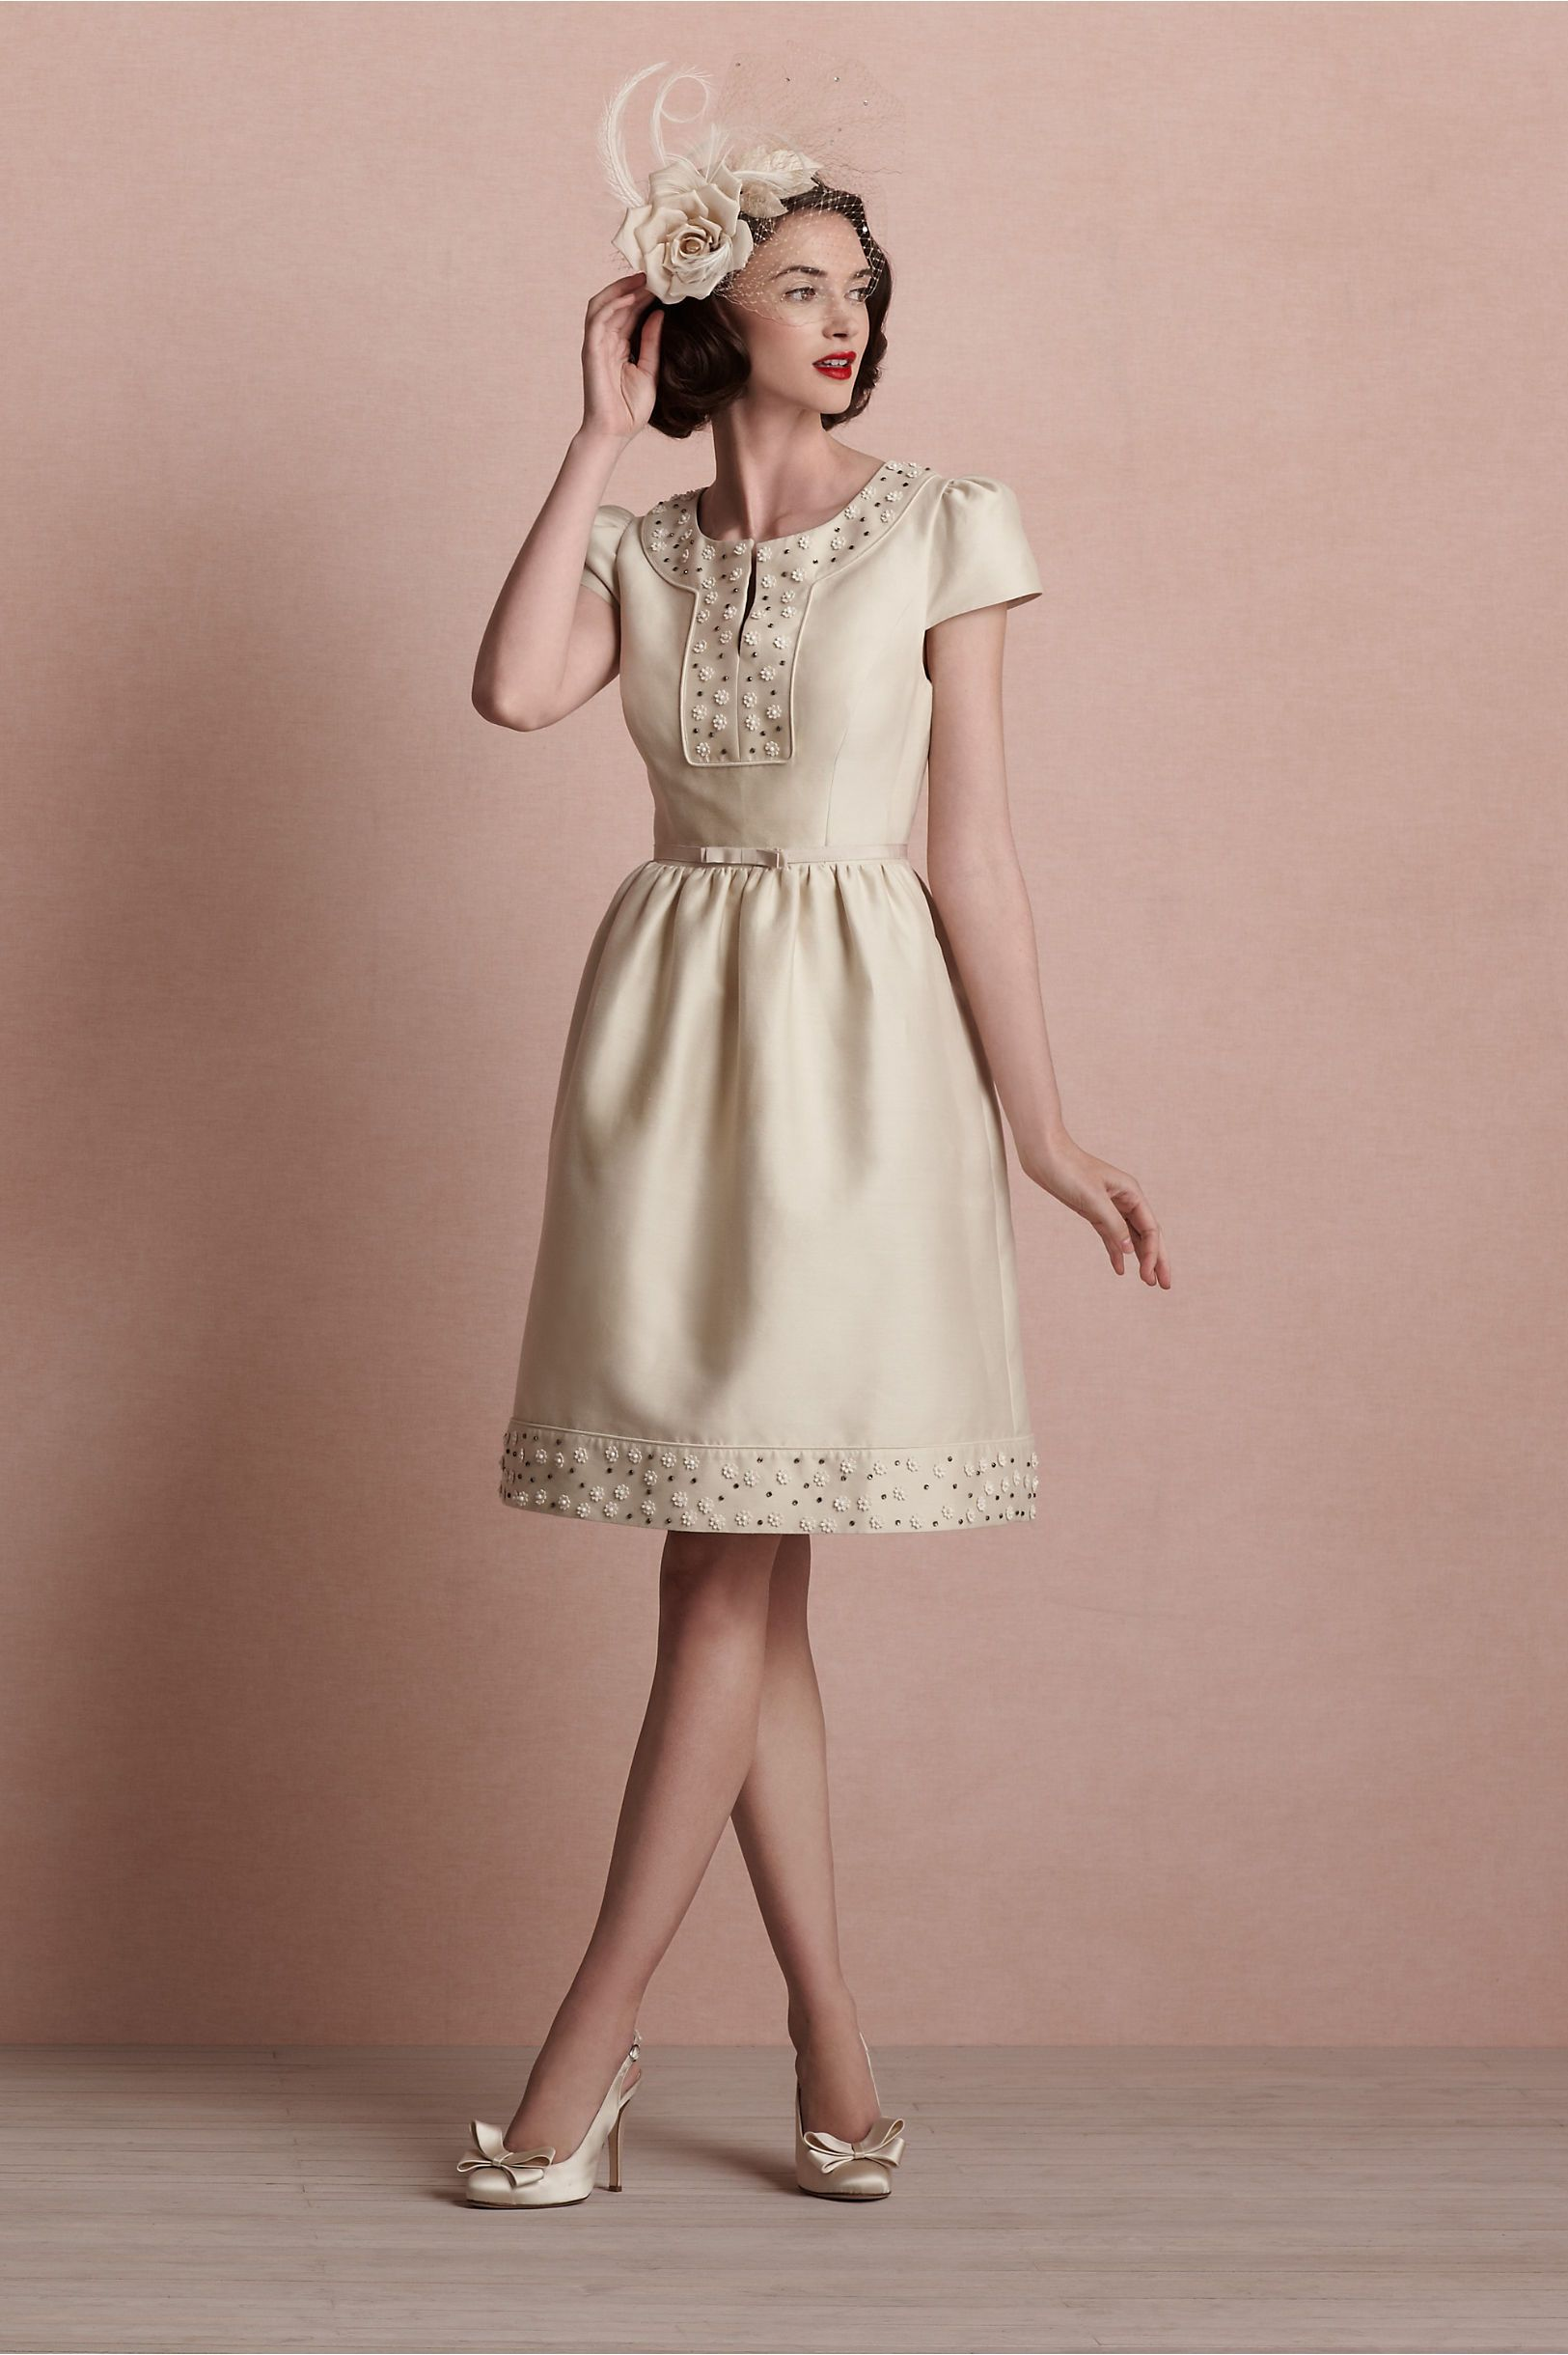 Whirlwind Dress in SHOP The Bride Wedding Dresses at BHLDN | dresses ...